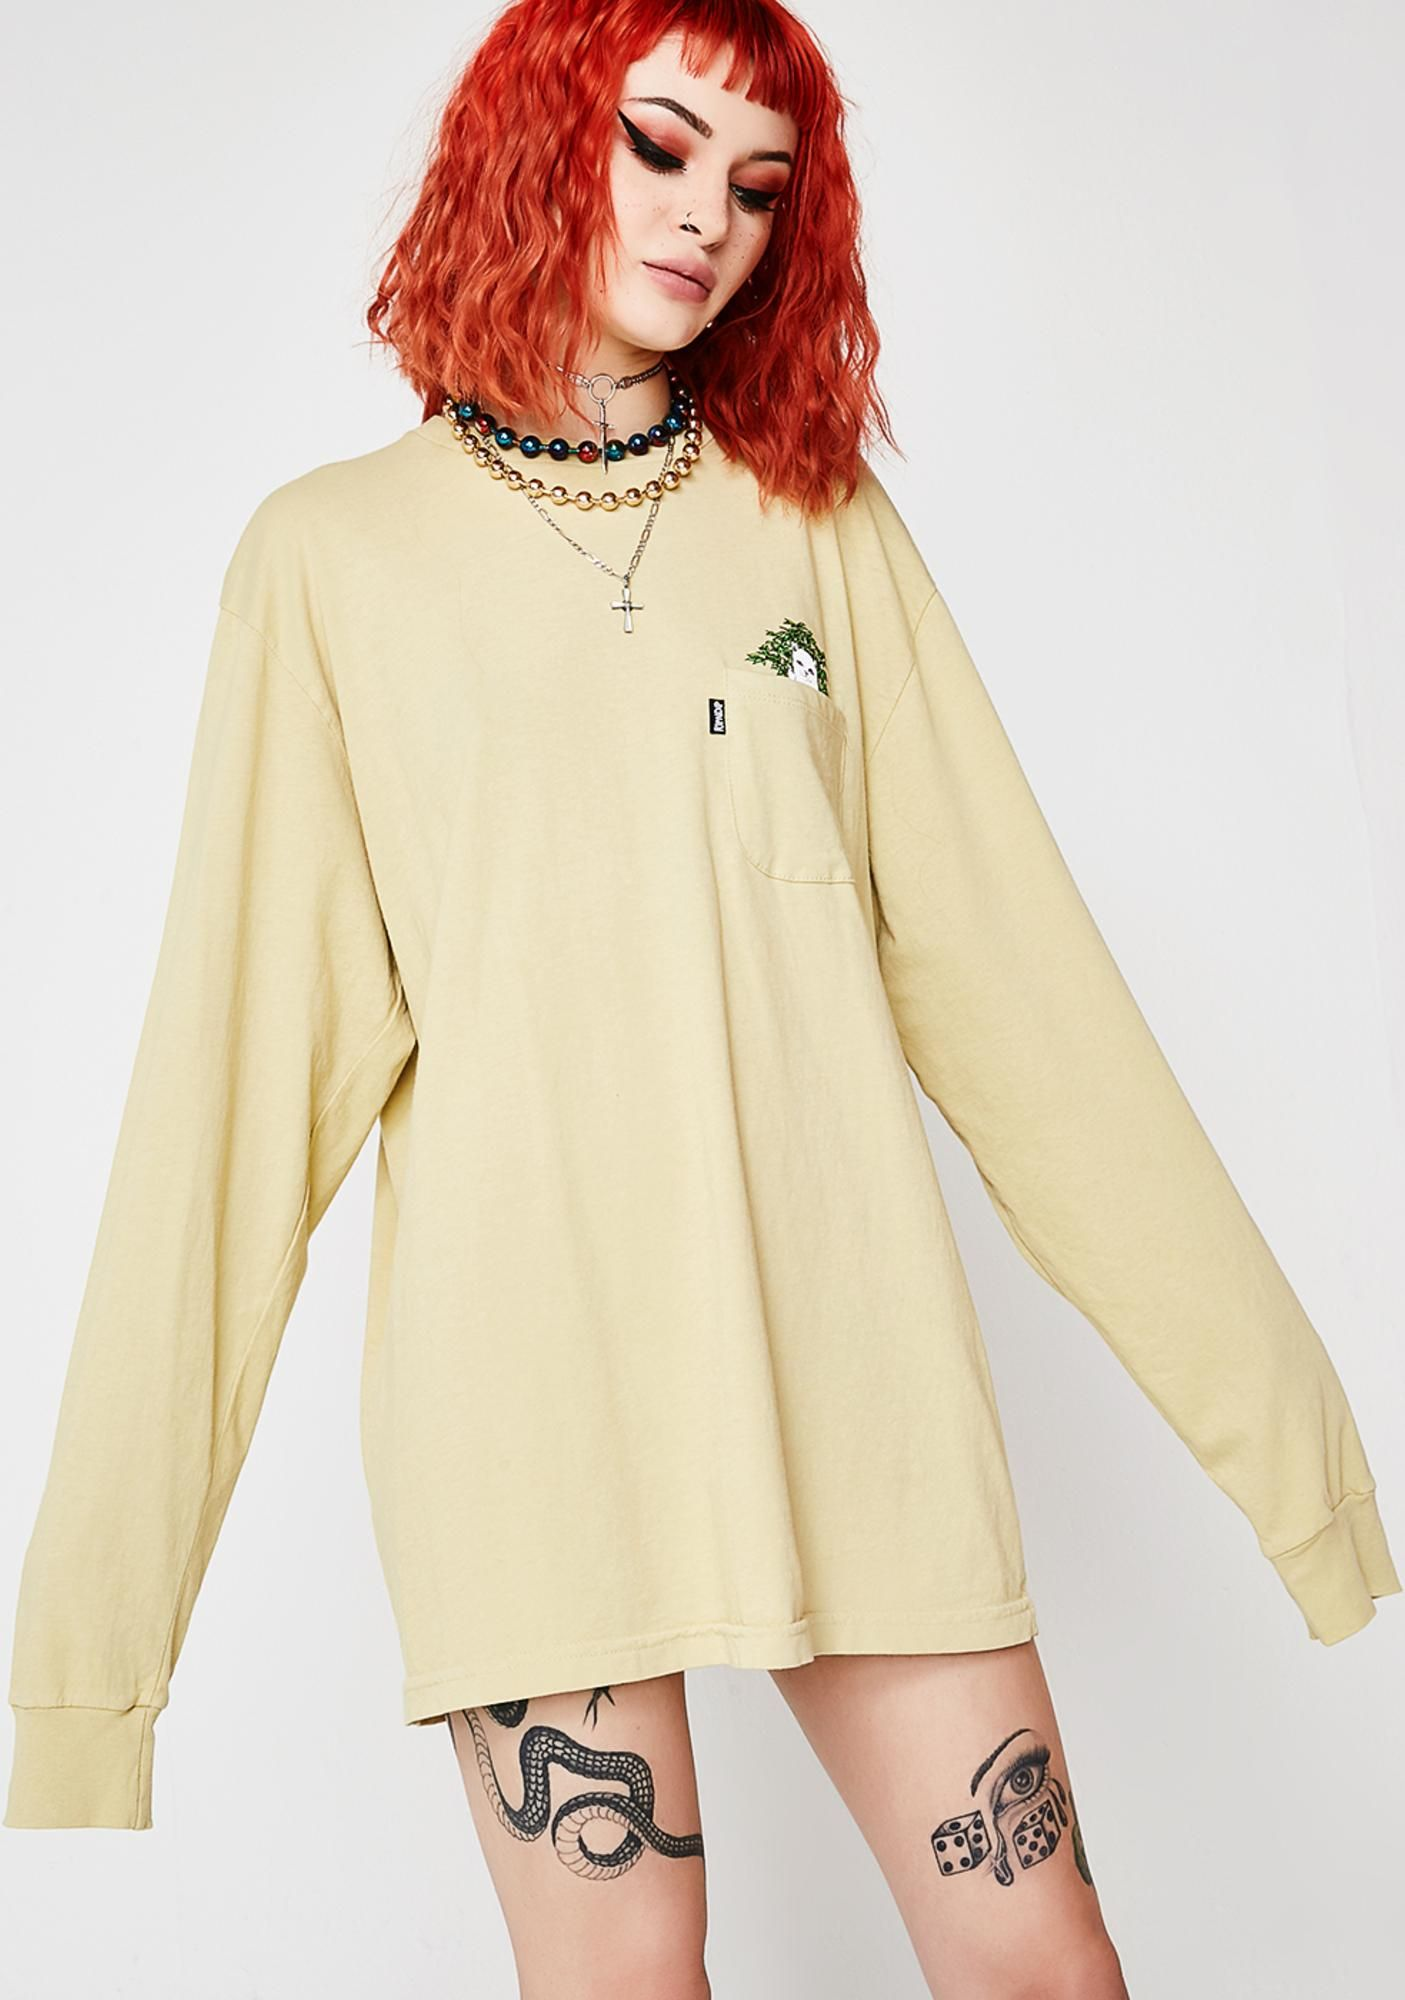 RIPNDIP Catnip Long Sleeve cuz ya do what ya want. Get stoney in this dope long sleeve shirt that has a sikk graphic of lord nermal chillin' with Mary Jane in the front pocket.. #dollskill #ripndip #newarrivals #nermalthecat